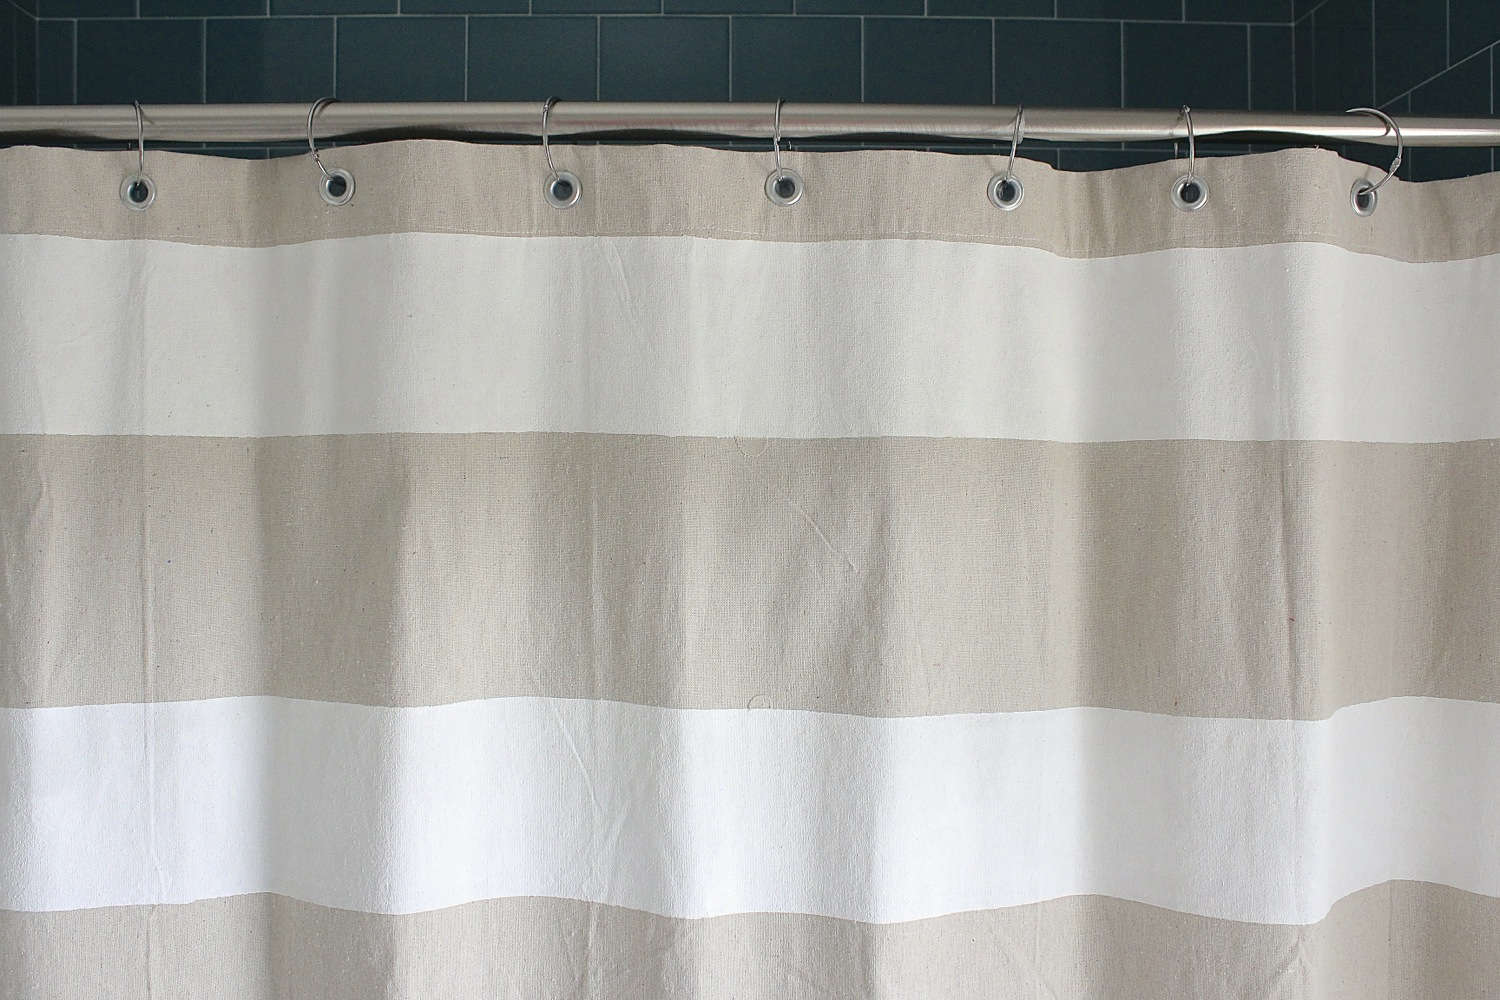 Grey White Striped Shower Curtain. Dropcloth Shower Curtain Made Everyday regarding size 1500 X 1000 Pink And White Striped  Curtains Ideas